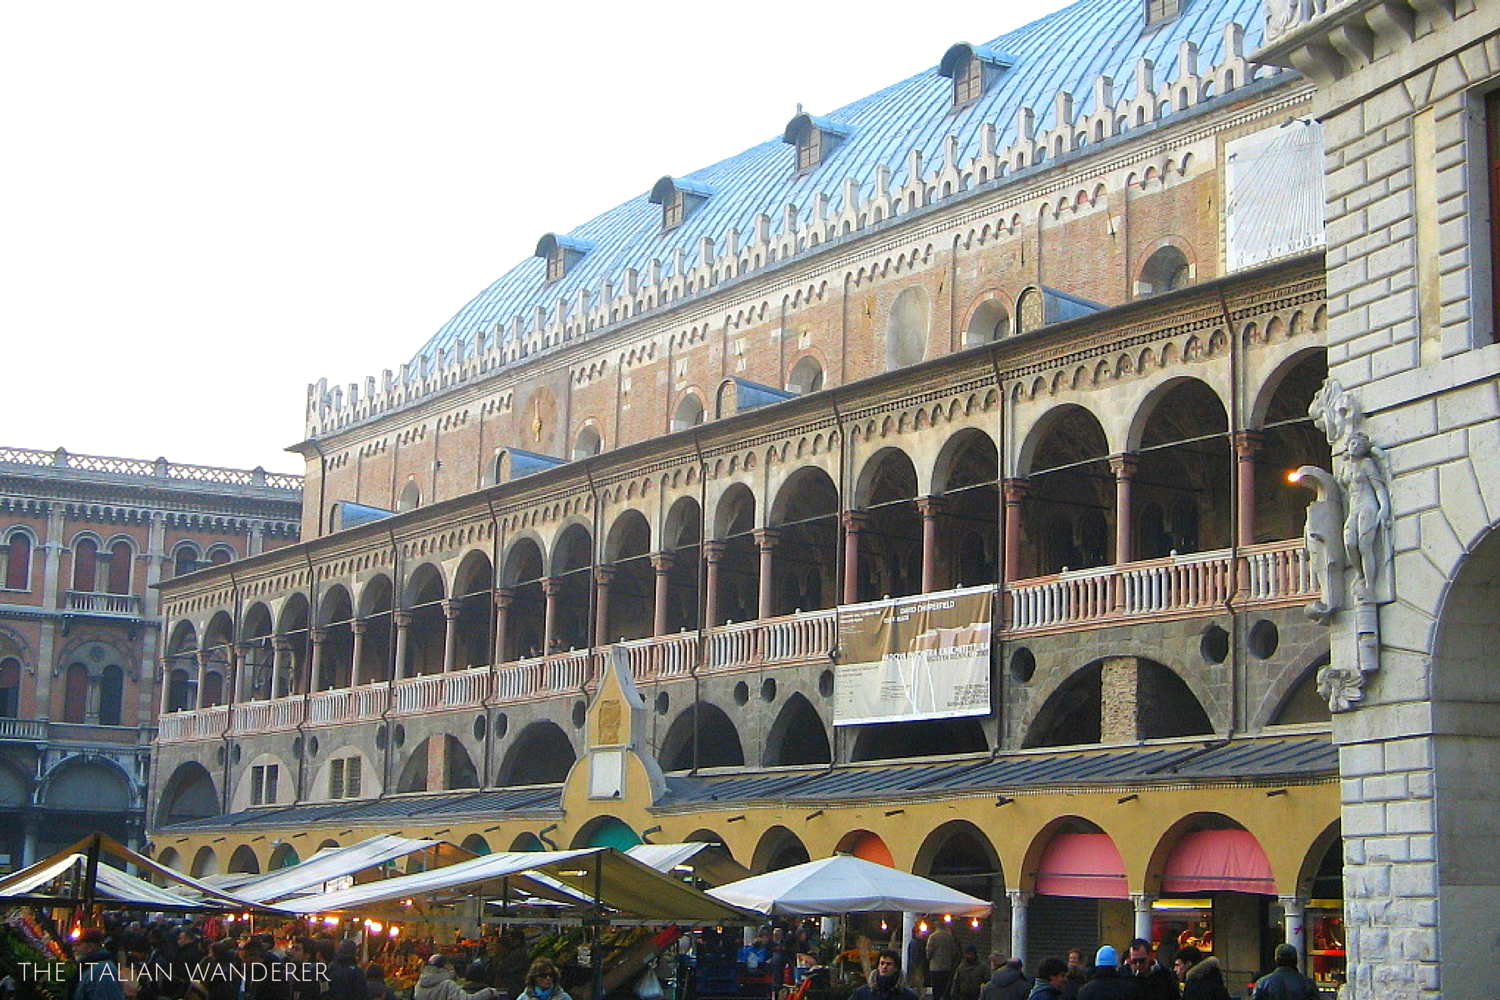 Padua, outside Palazzo della Ragione. The upper part of the building is the biggest pensile room of the world!